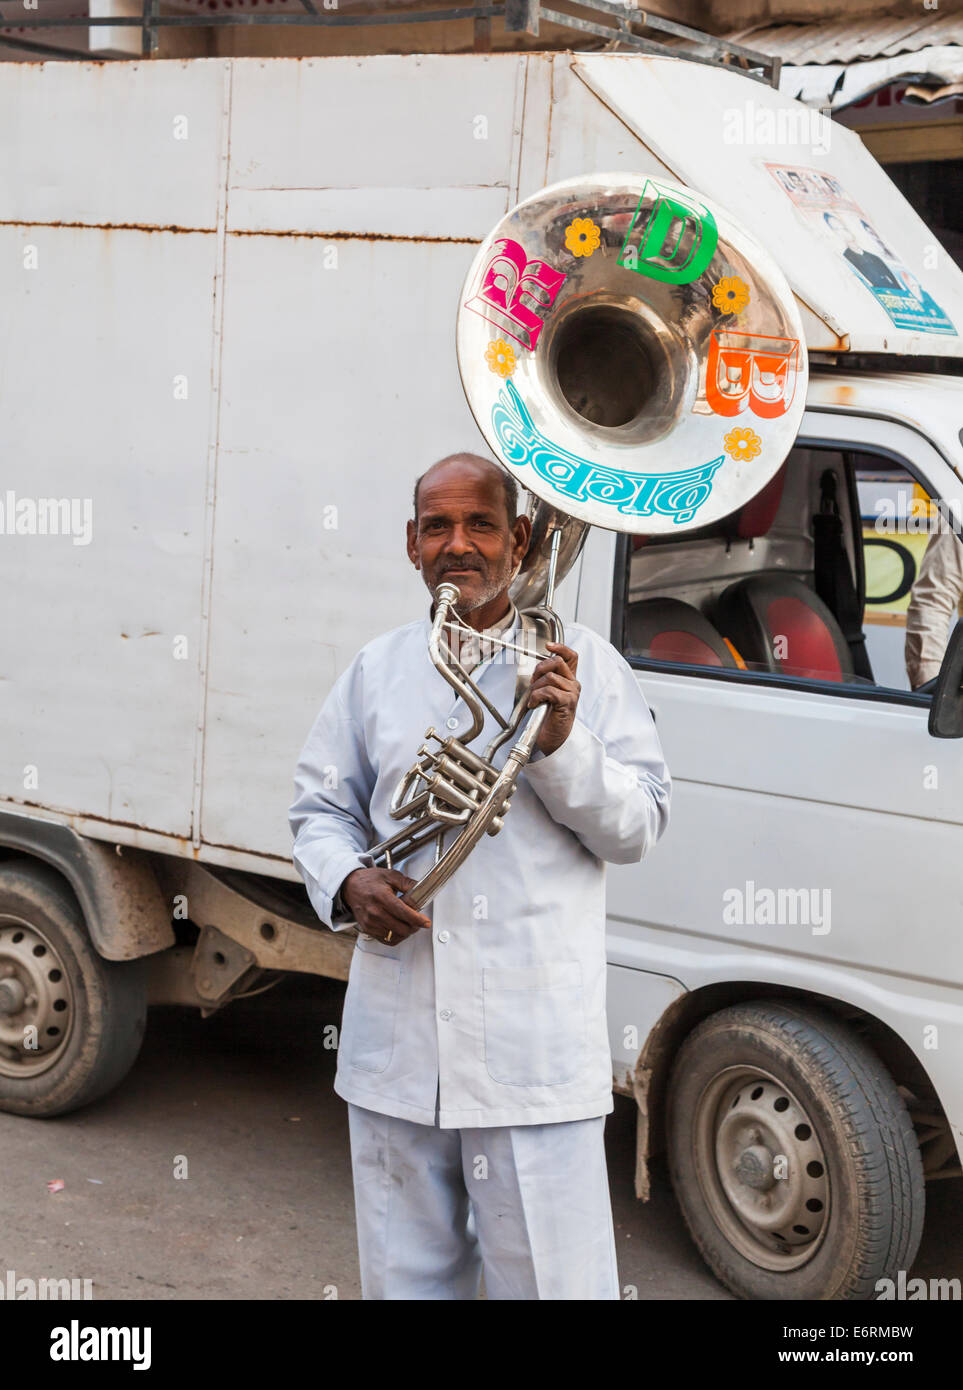 Local Indian musician with large horn musical instrument, hired for a wedding procession, Deogarh, Rajasthan, India - Stock Image